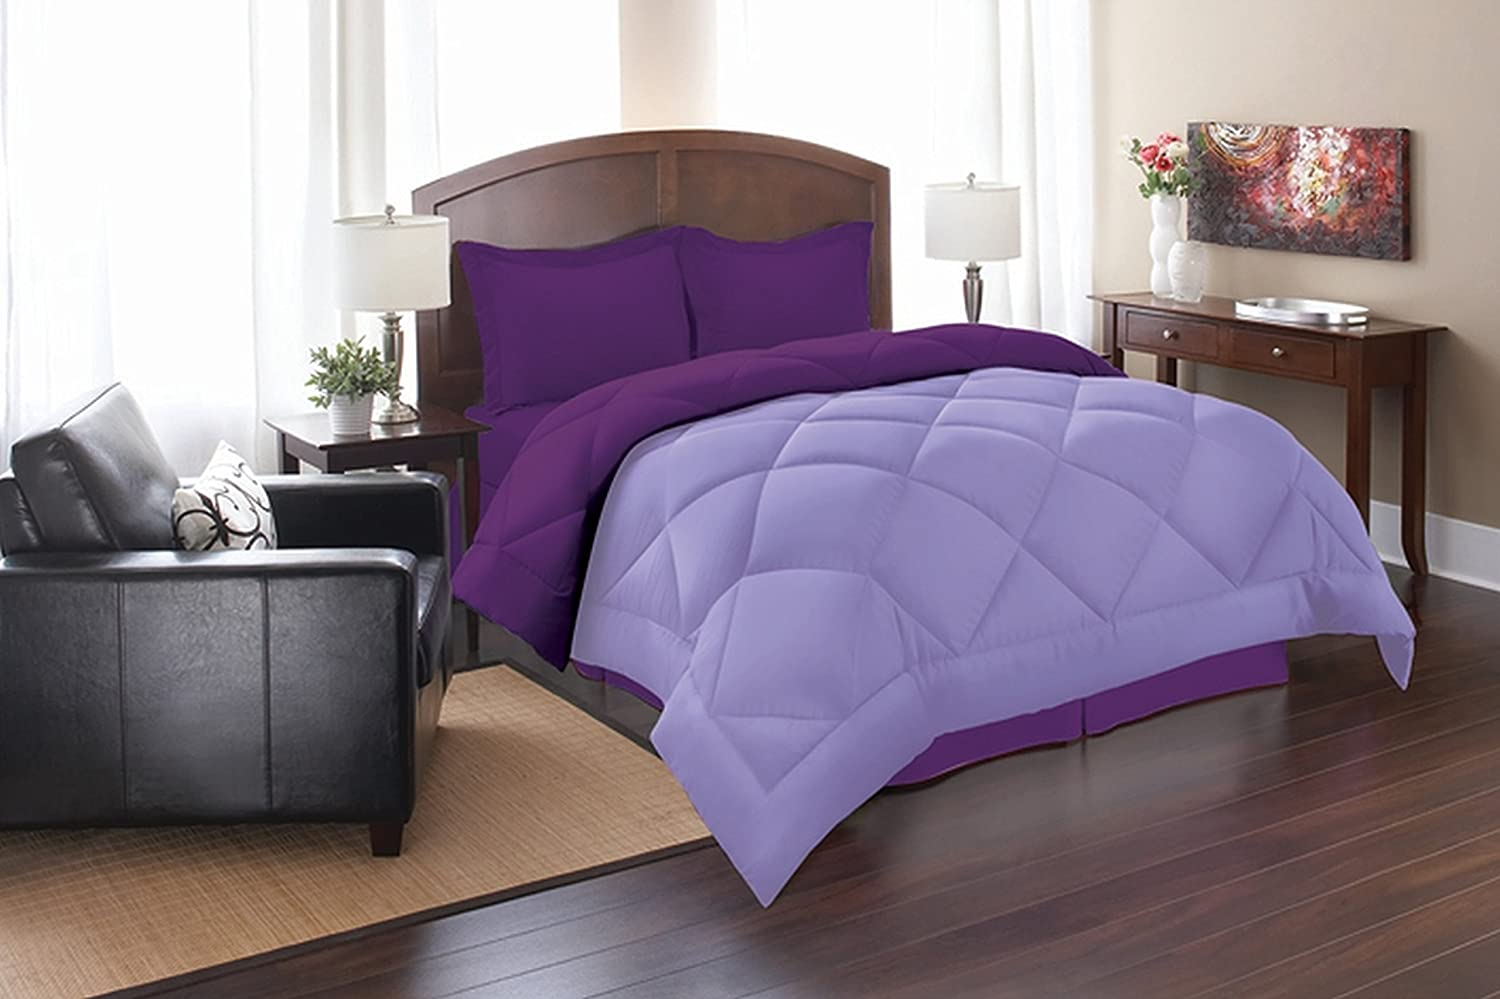 Elegance Linen Super Soft Goose Down 3pc Reversible Alternative Comforter, Queen, Lilac/Purple